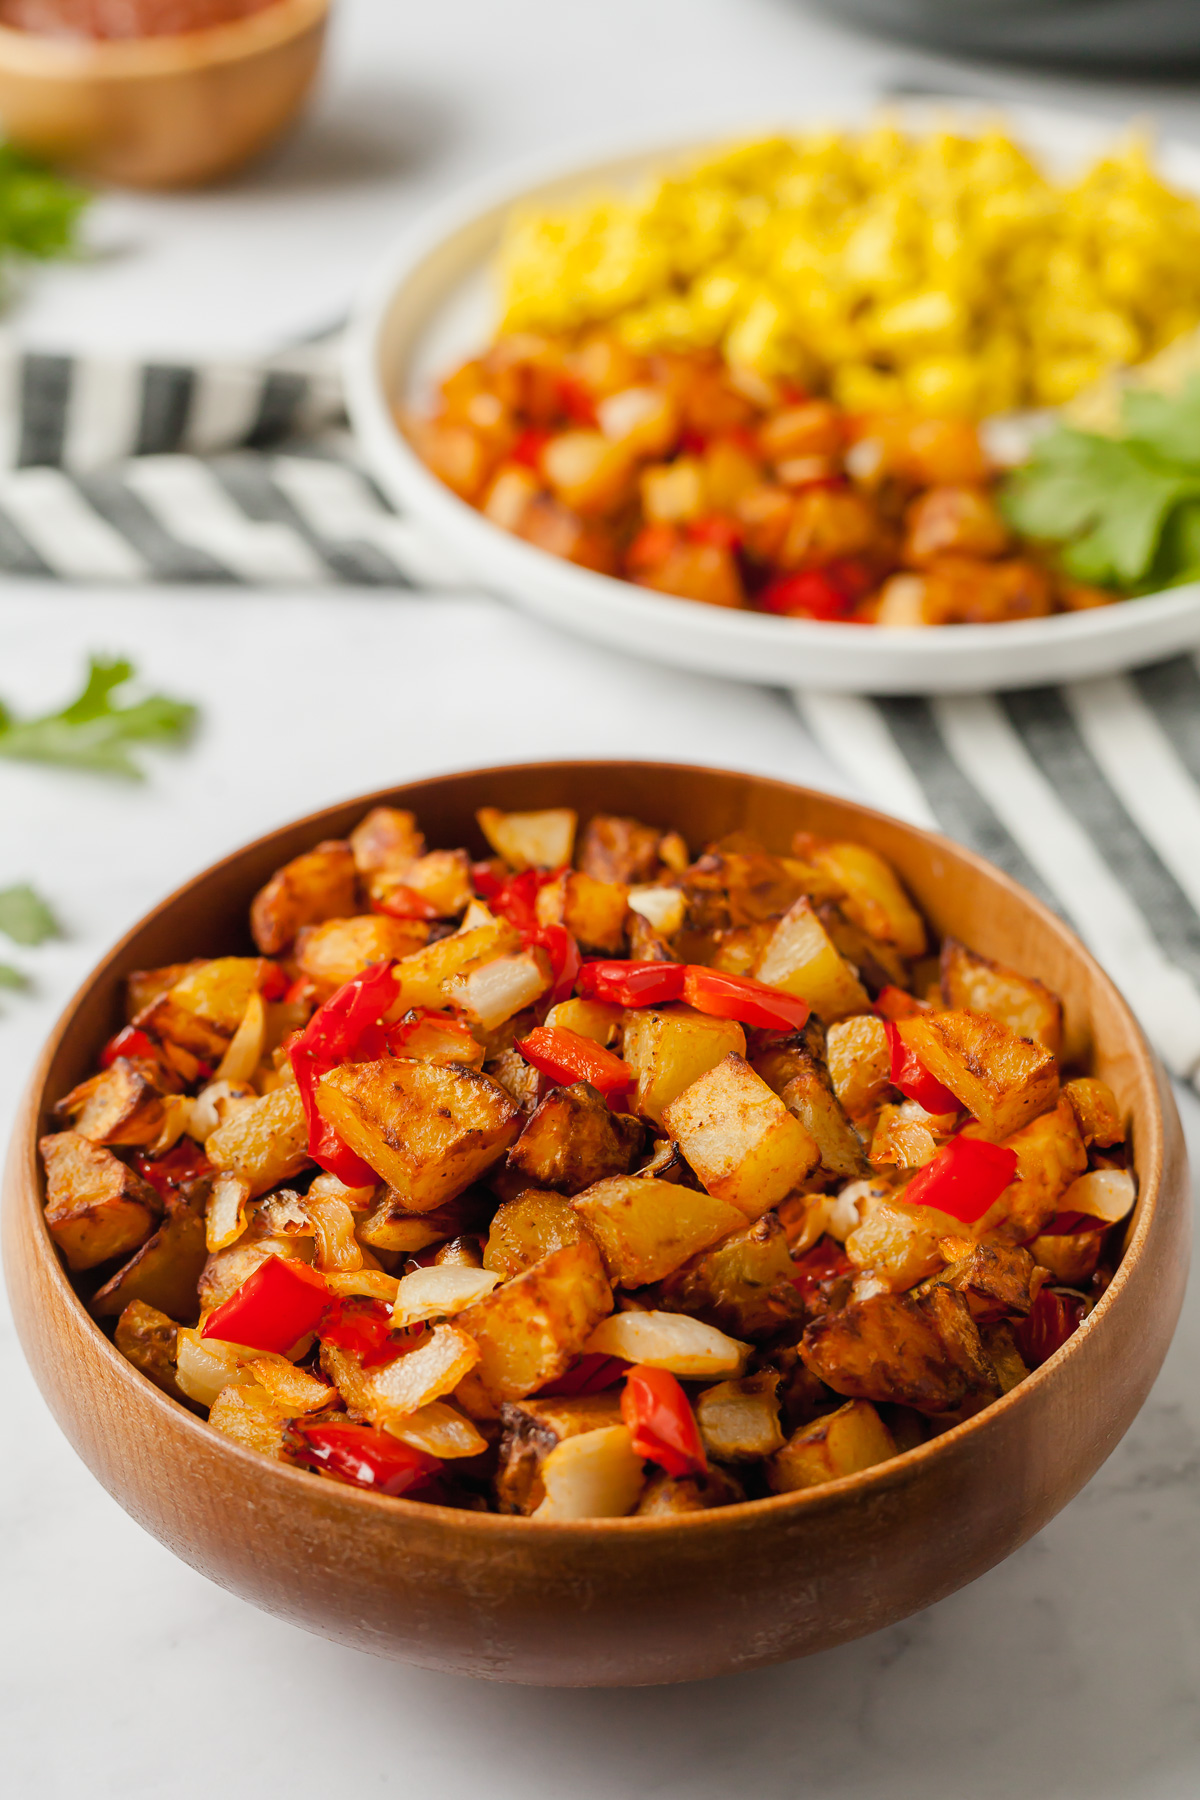 a bowl of air fryer home fries with more food in the background